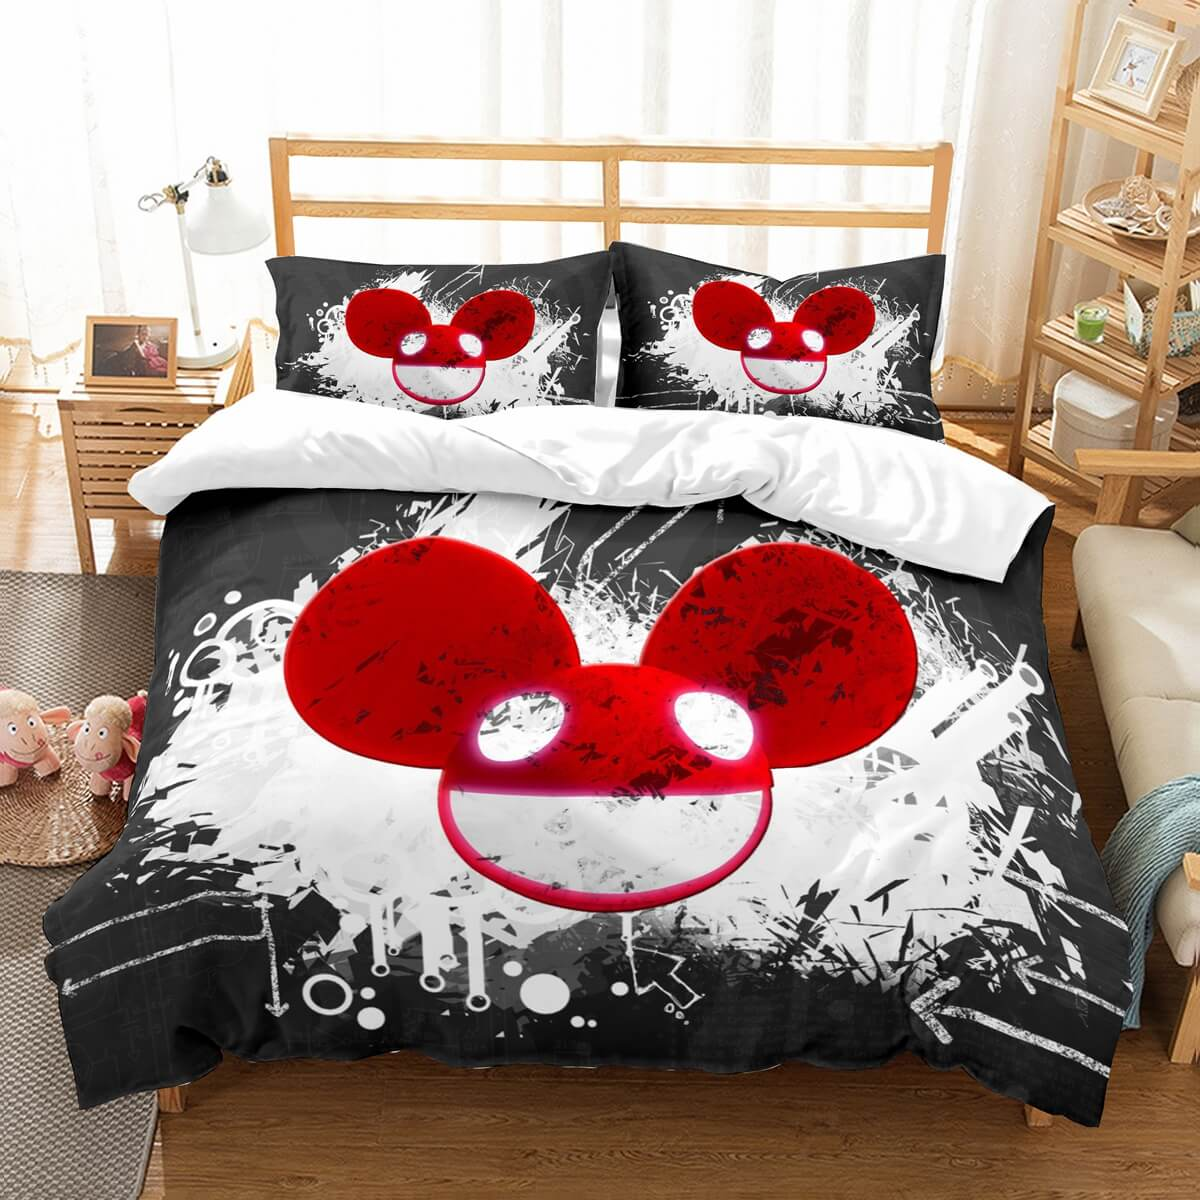 3D Customize Deadmau5 Bedding Set Duvet Cover Set Bedroom Set Bedlinen